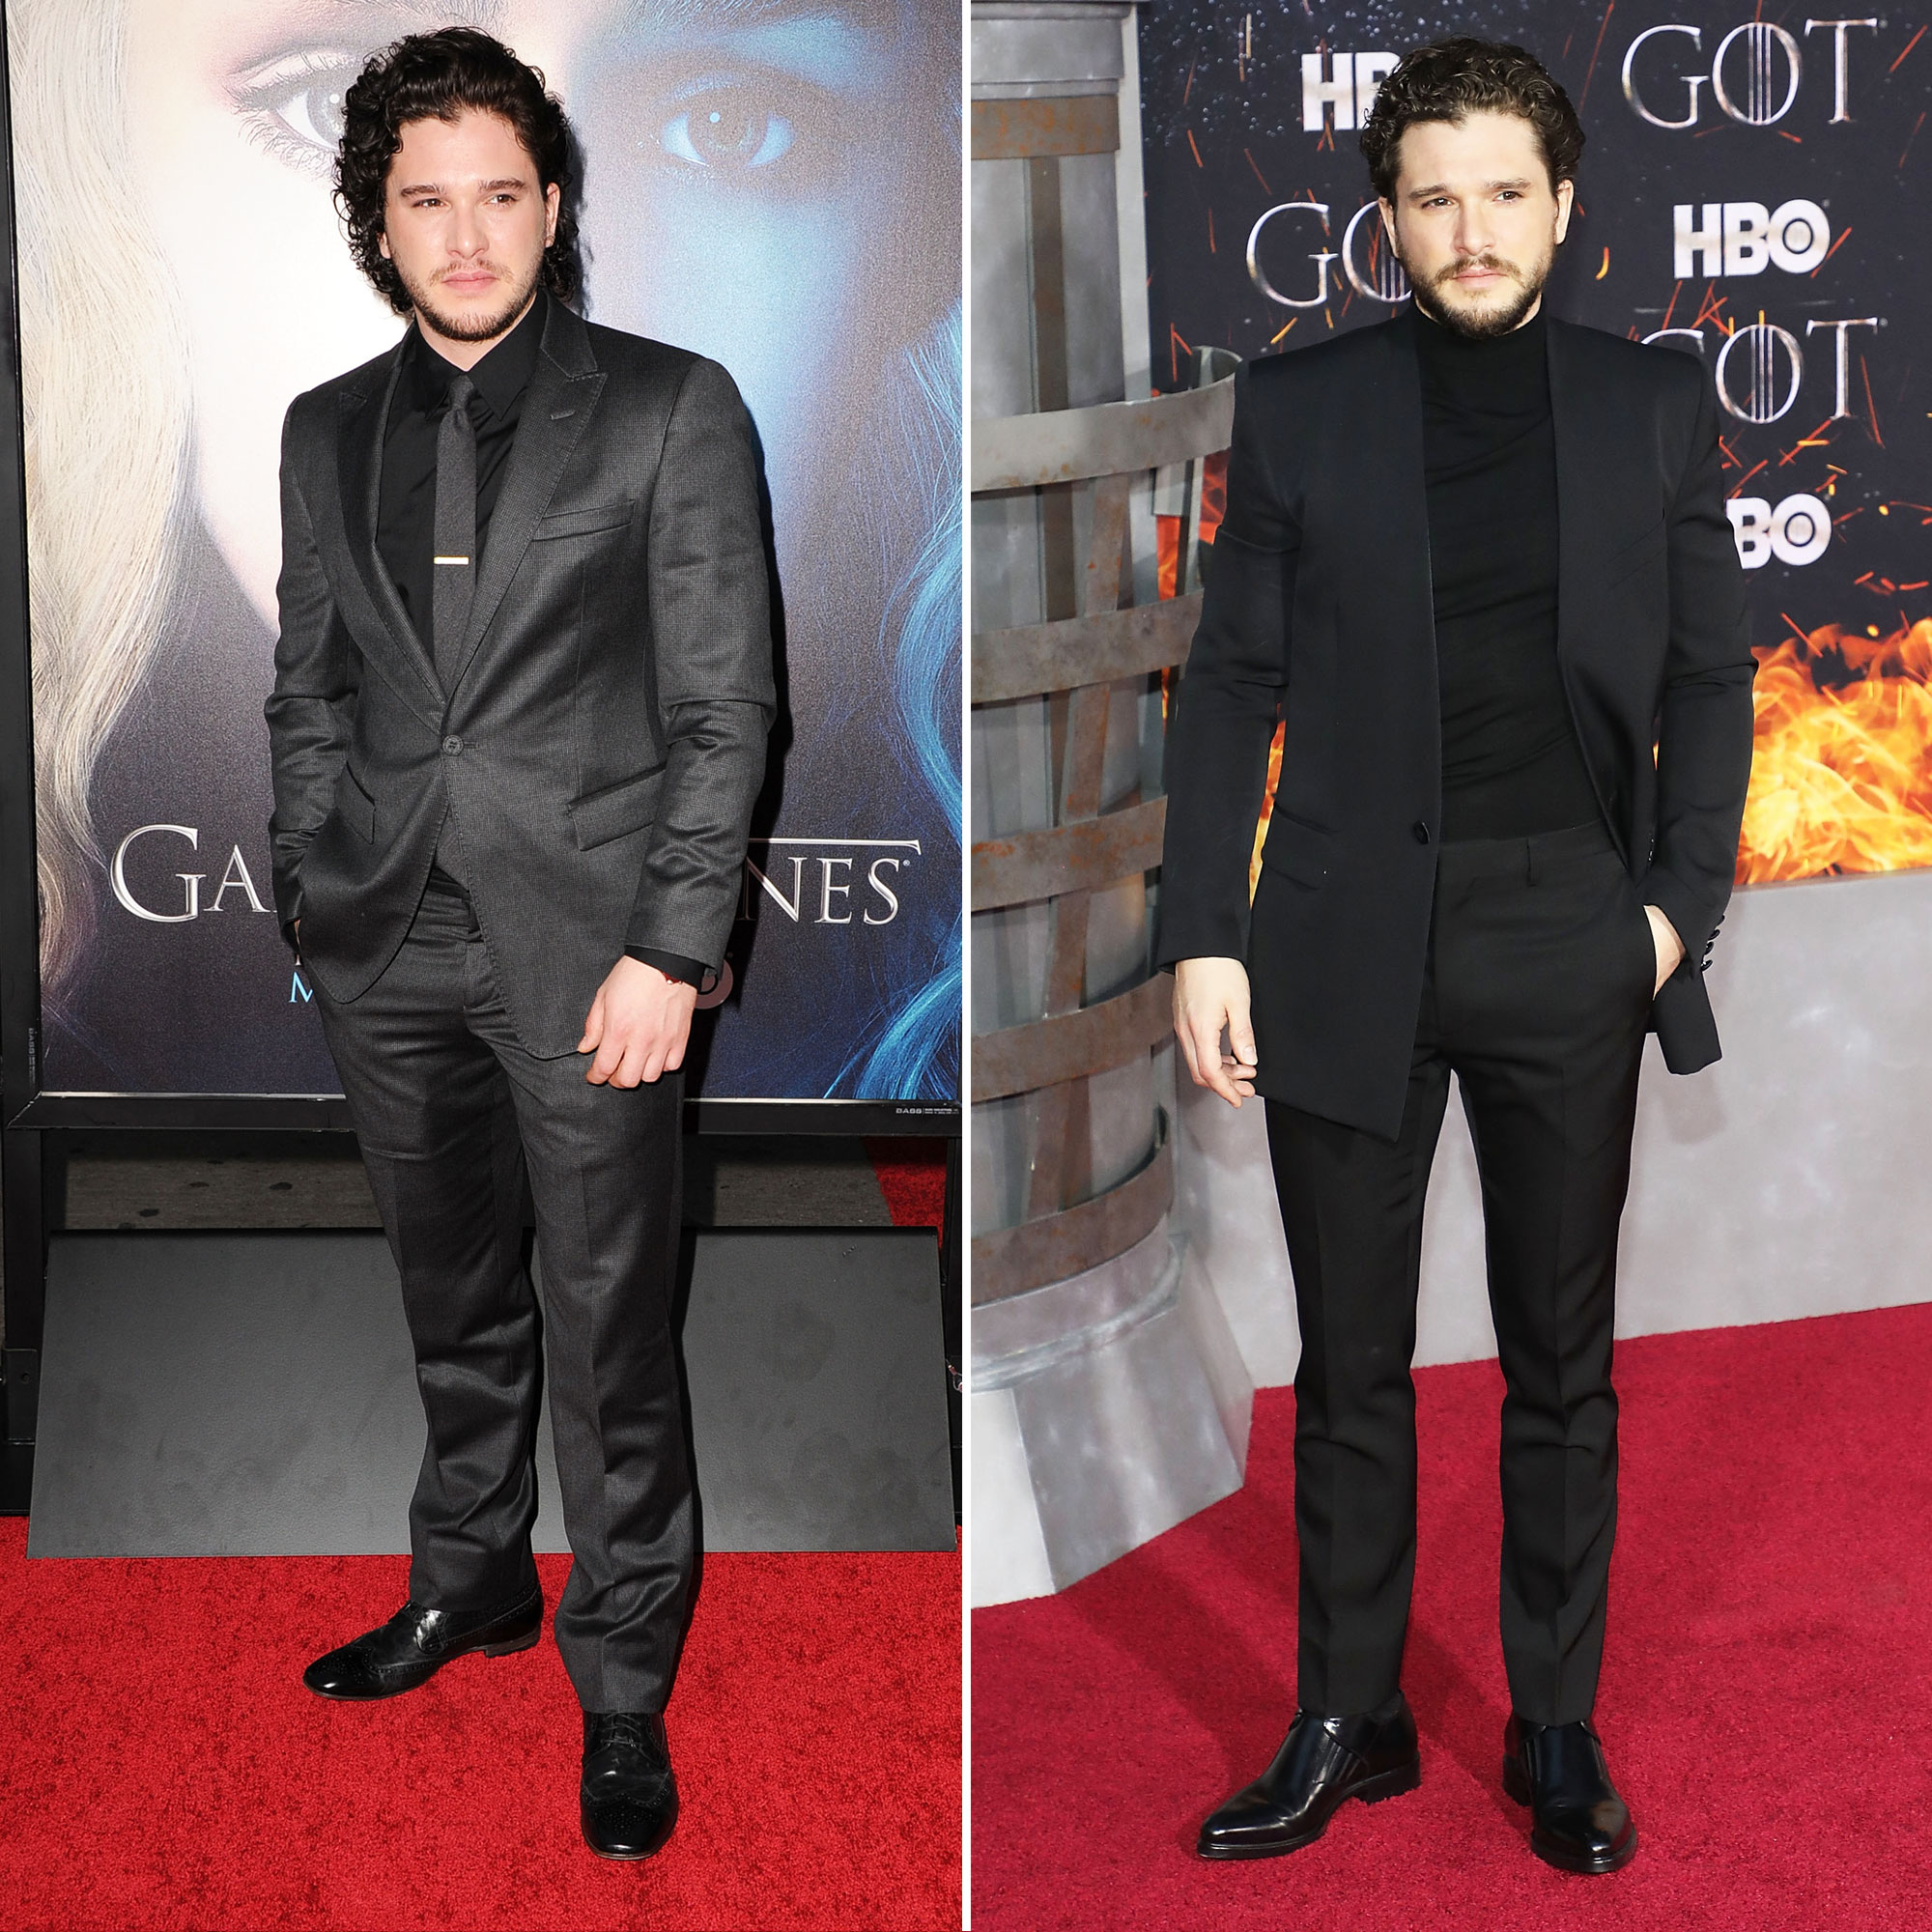 Kit Harington 'Game of Thrones' Stars: From the First 'GoT' Red Carpet Premiere to the Last - When the first episode of Game of Thrones aired on April 17, 2011, Harington was a 24-year-old with luxurious locks and no other professional acting credits to his name. Since the show wrapped filming, however, the hunky actor, who's now in his thirties, cut his long, curly mane and has gone on to star in movies such as Pompeii , The Death and Life of John F. Donovan and even lent his voice to the animated How to Train Your Dragon franchise.